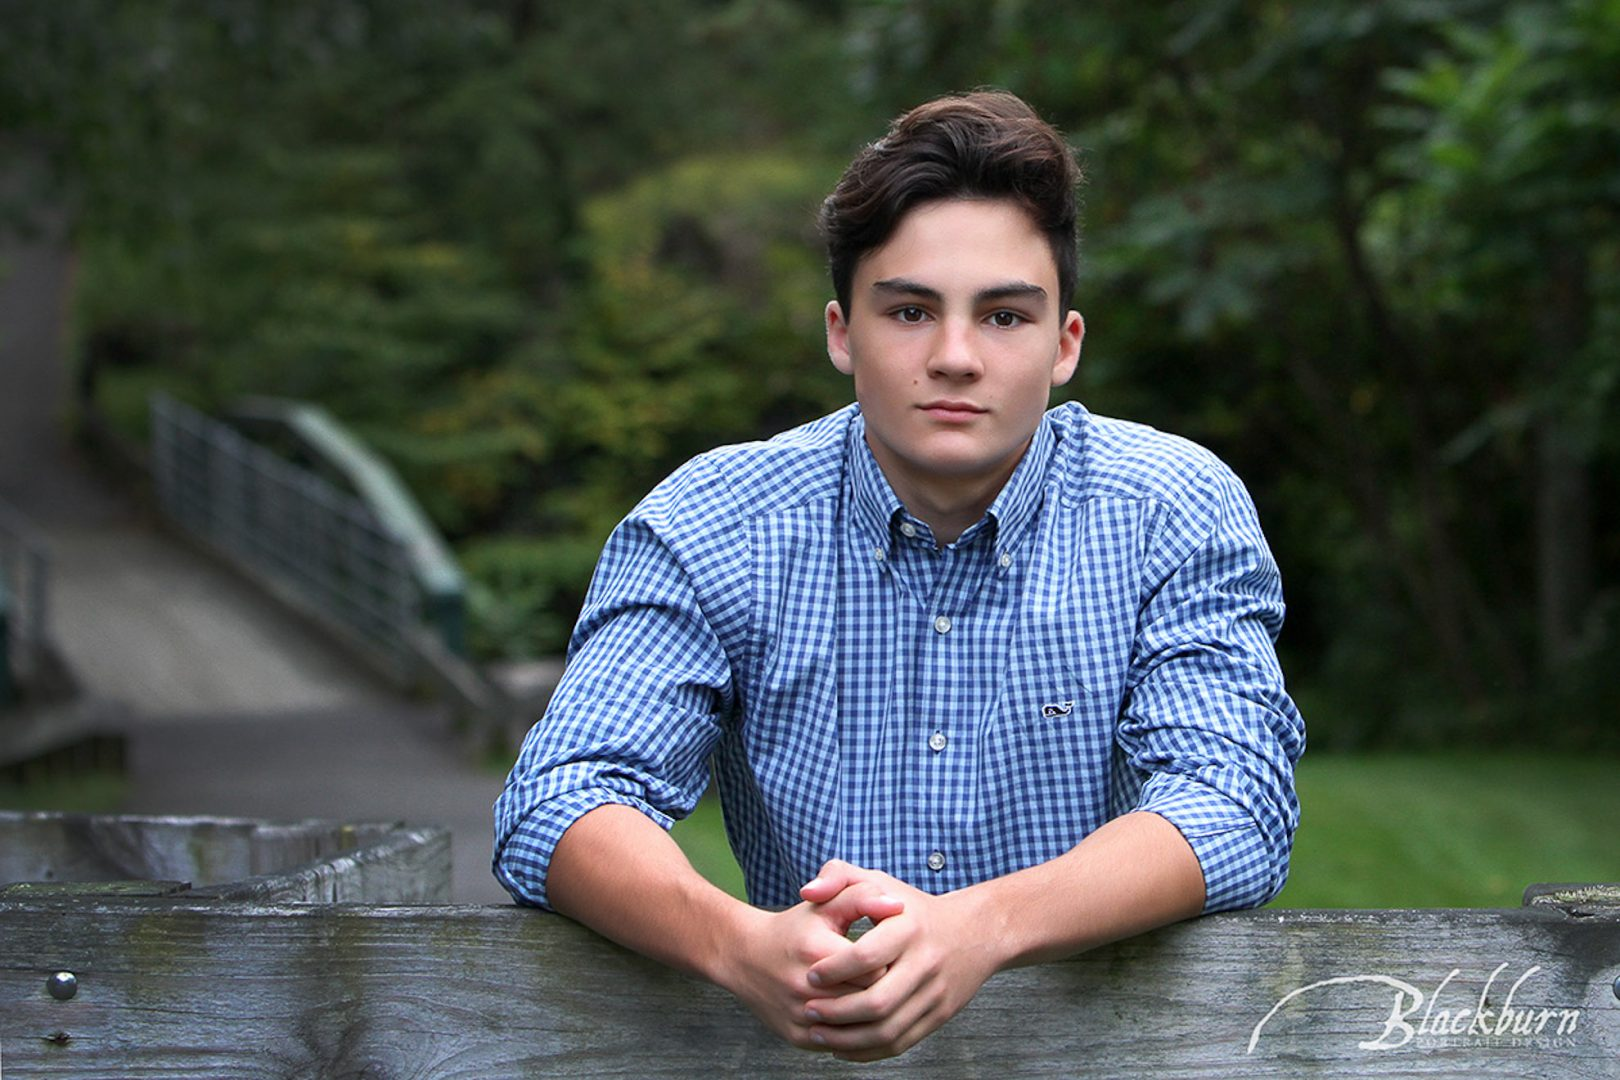 Ballston spa NY Senior Portraits